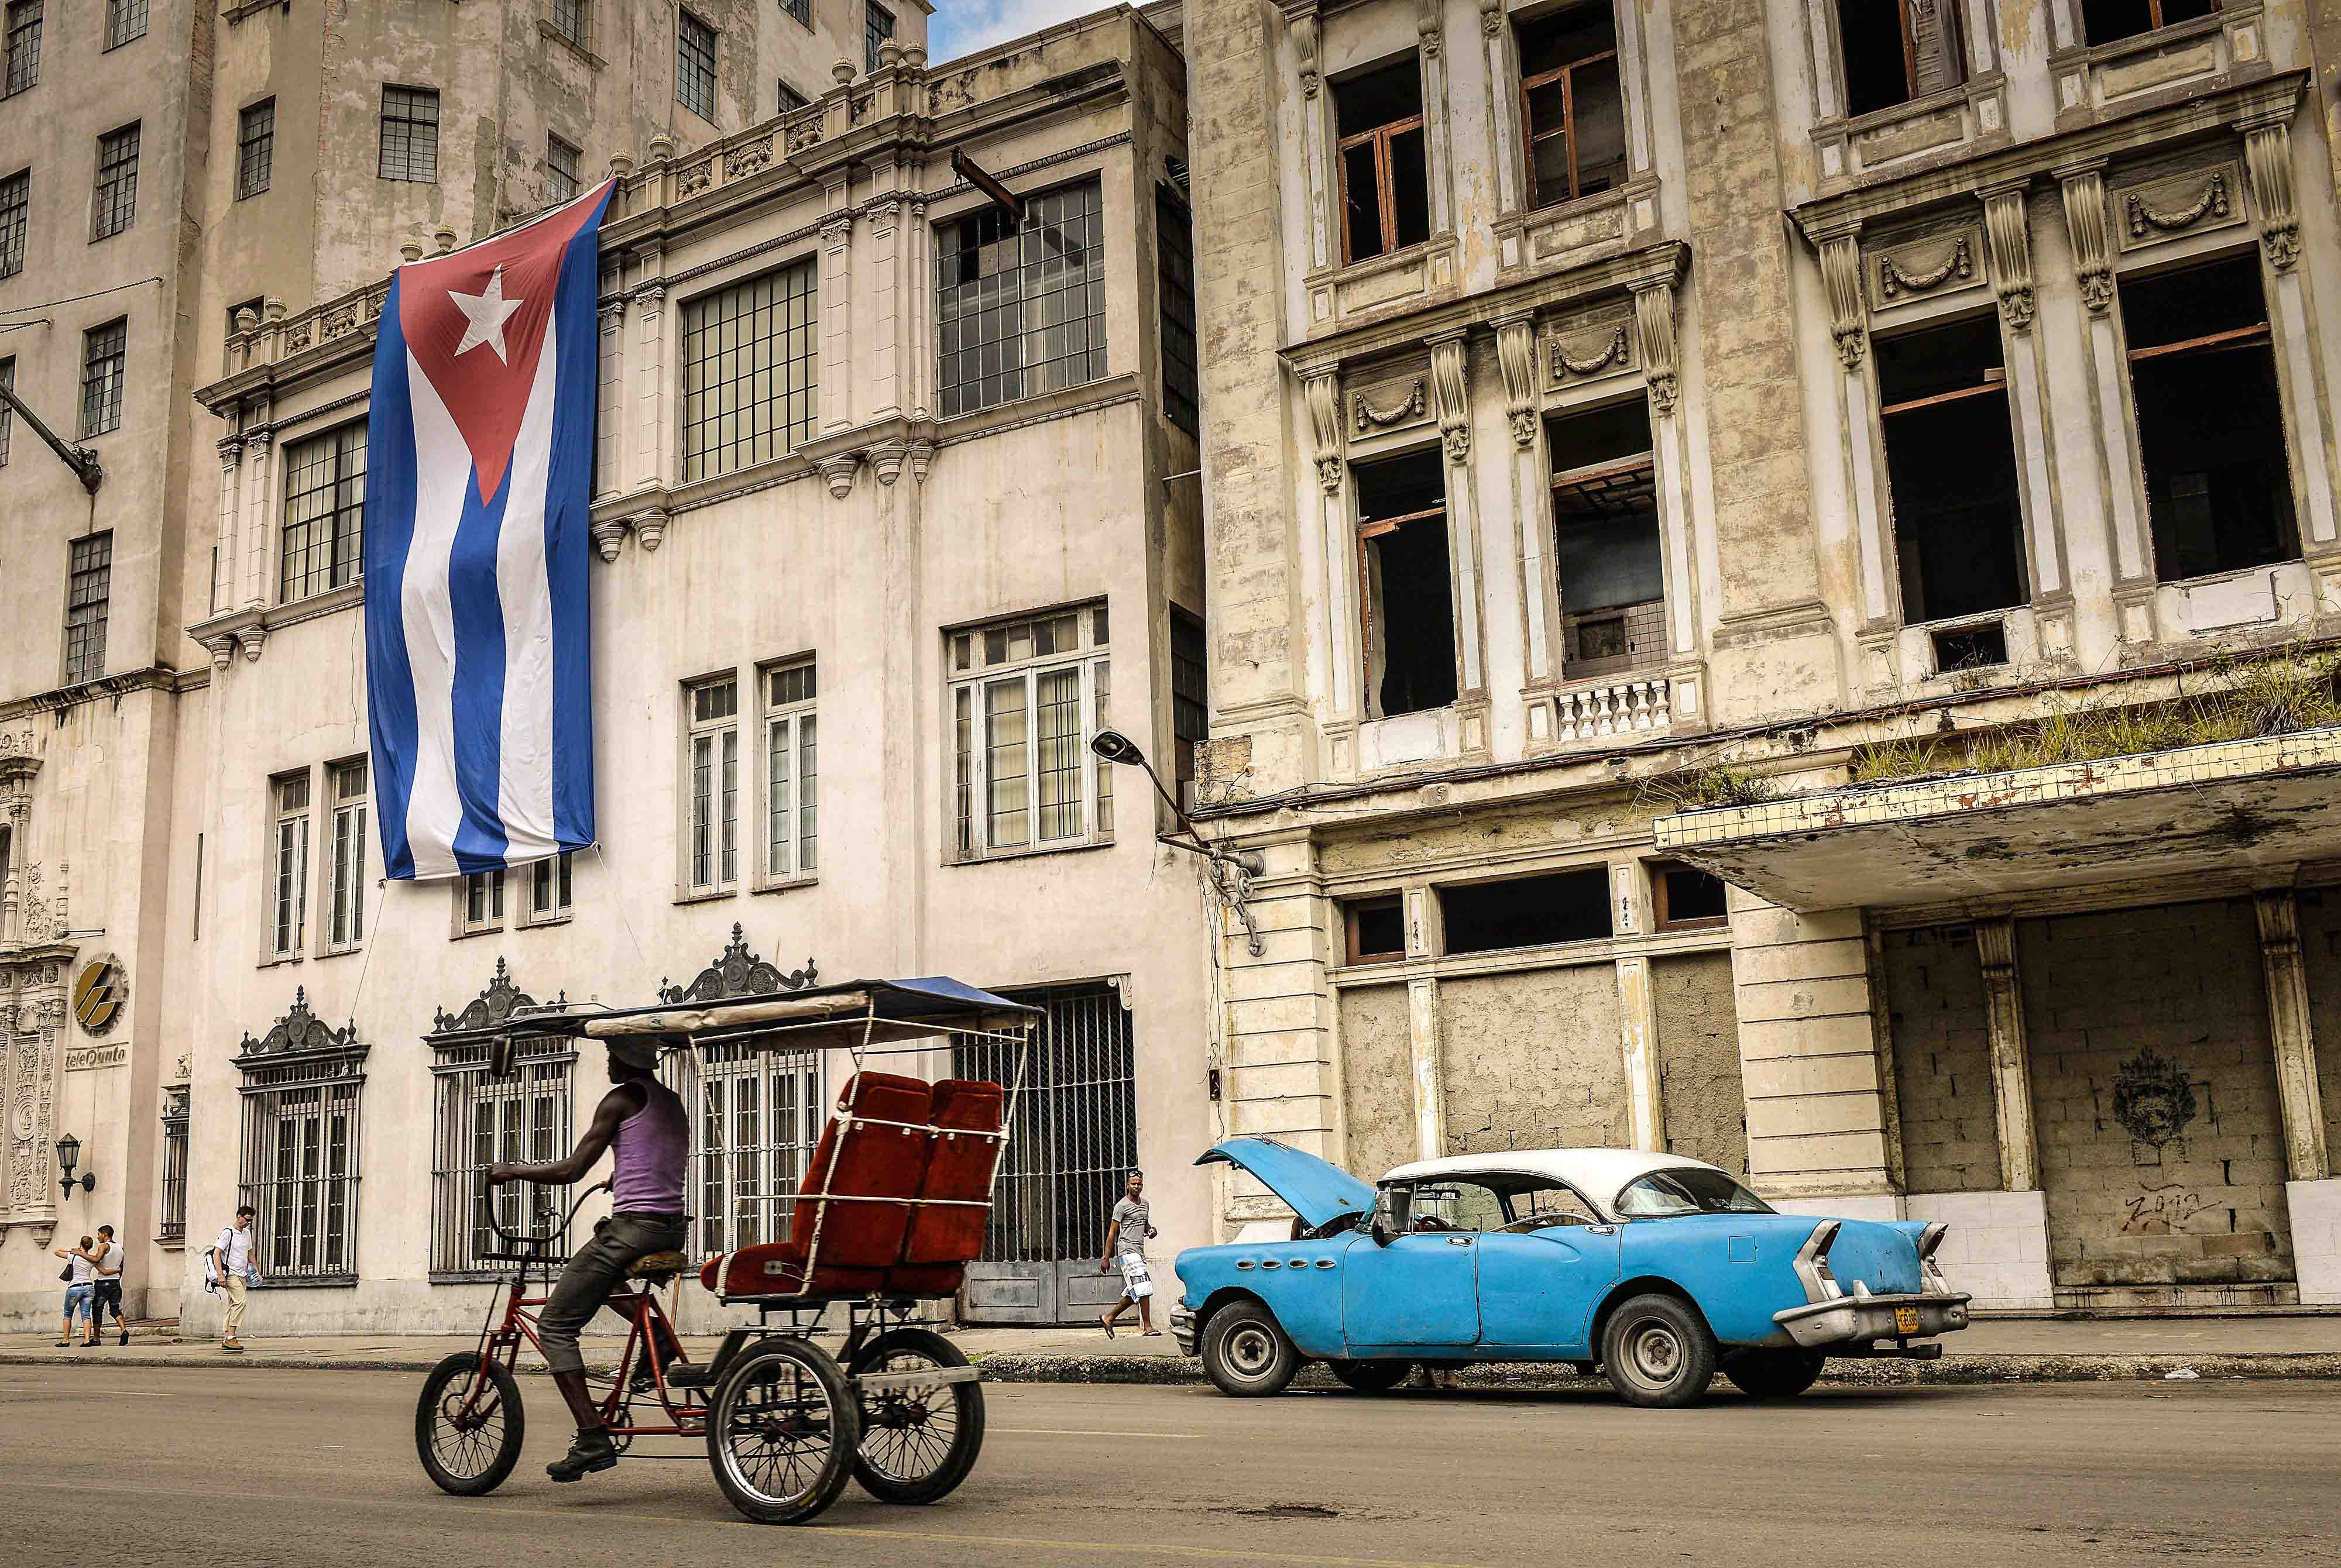 Interesting facts about Cuba